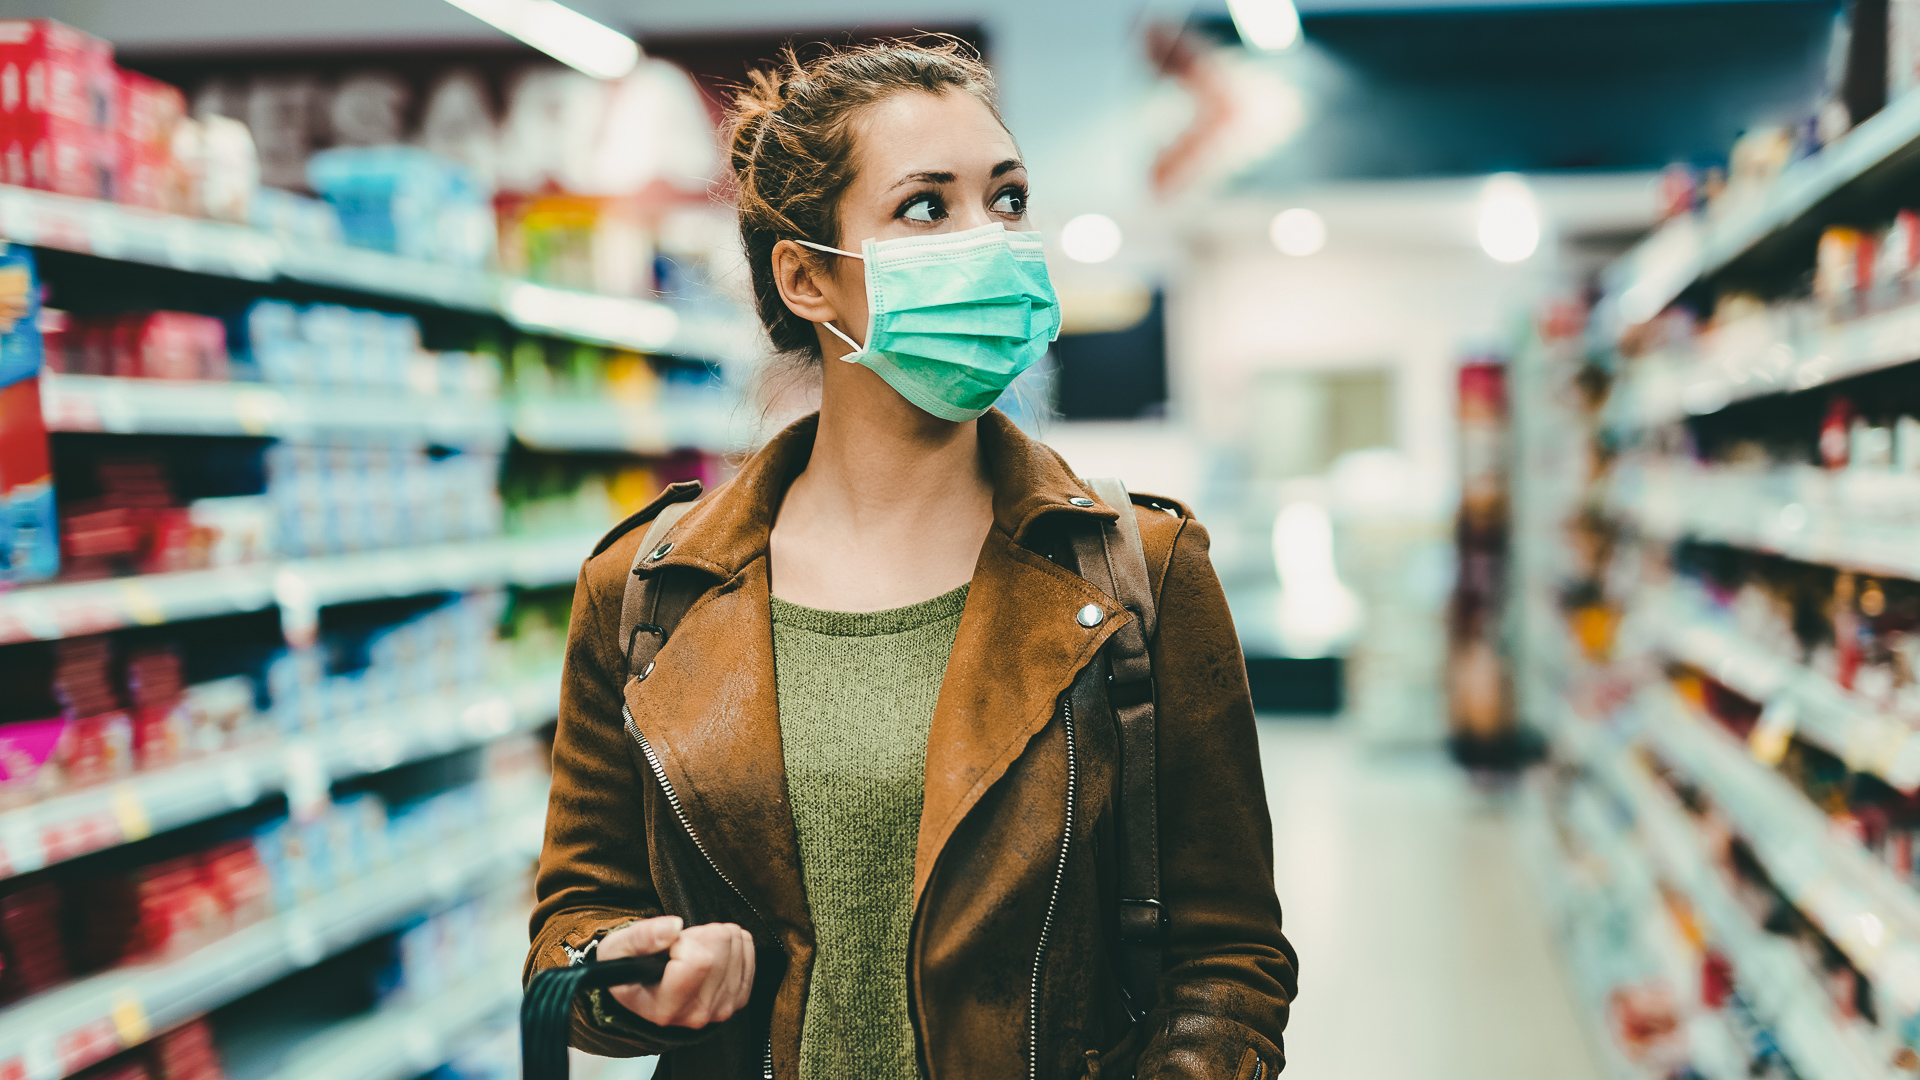 Your Grocery Store Shopping Strategy During the Coronavirus Crisis